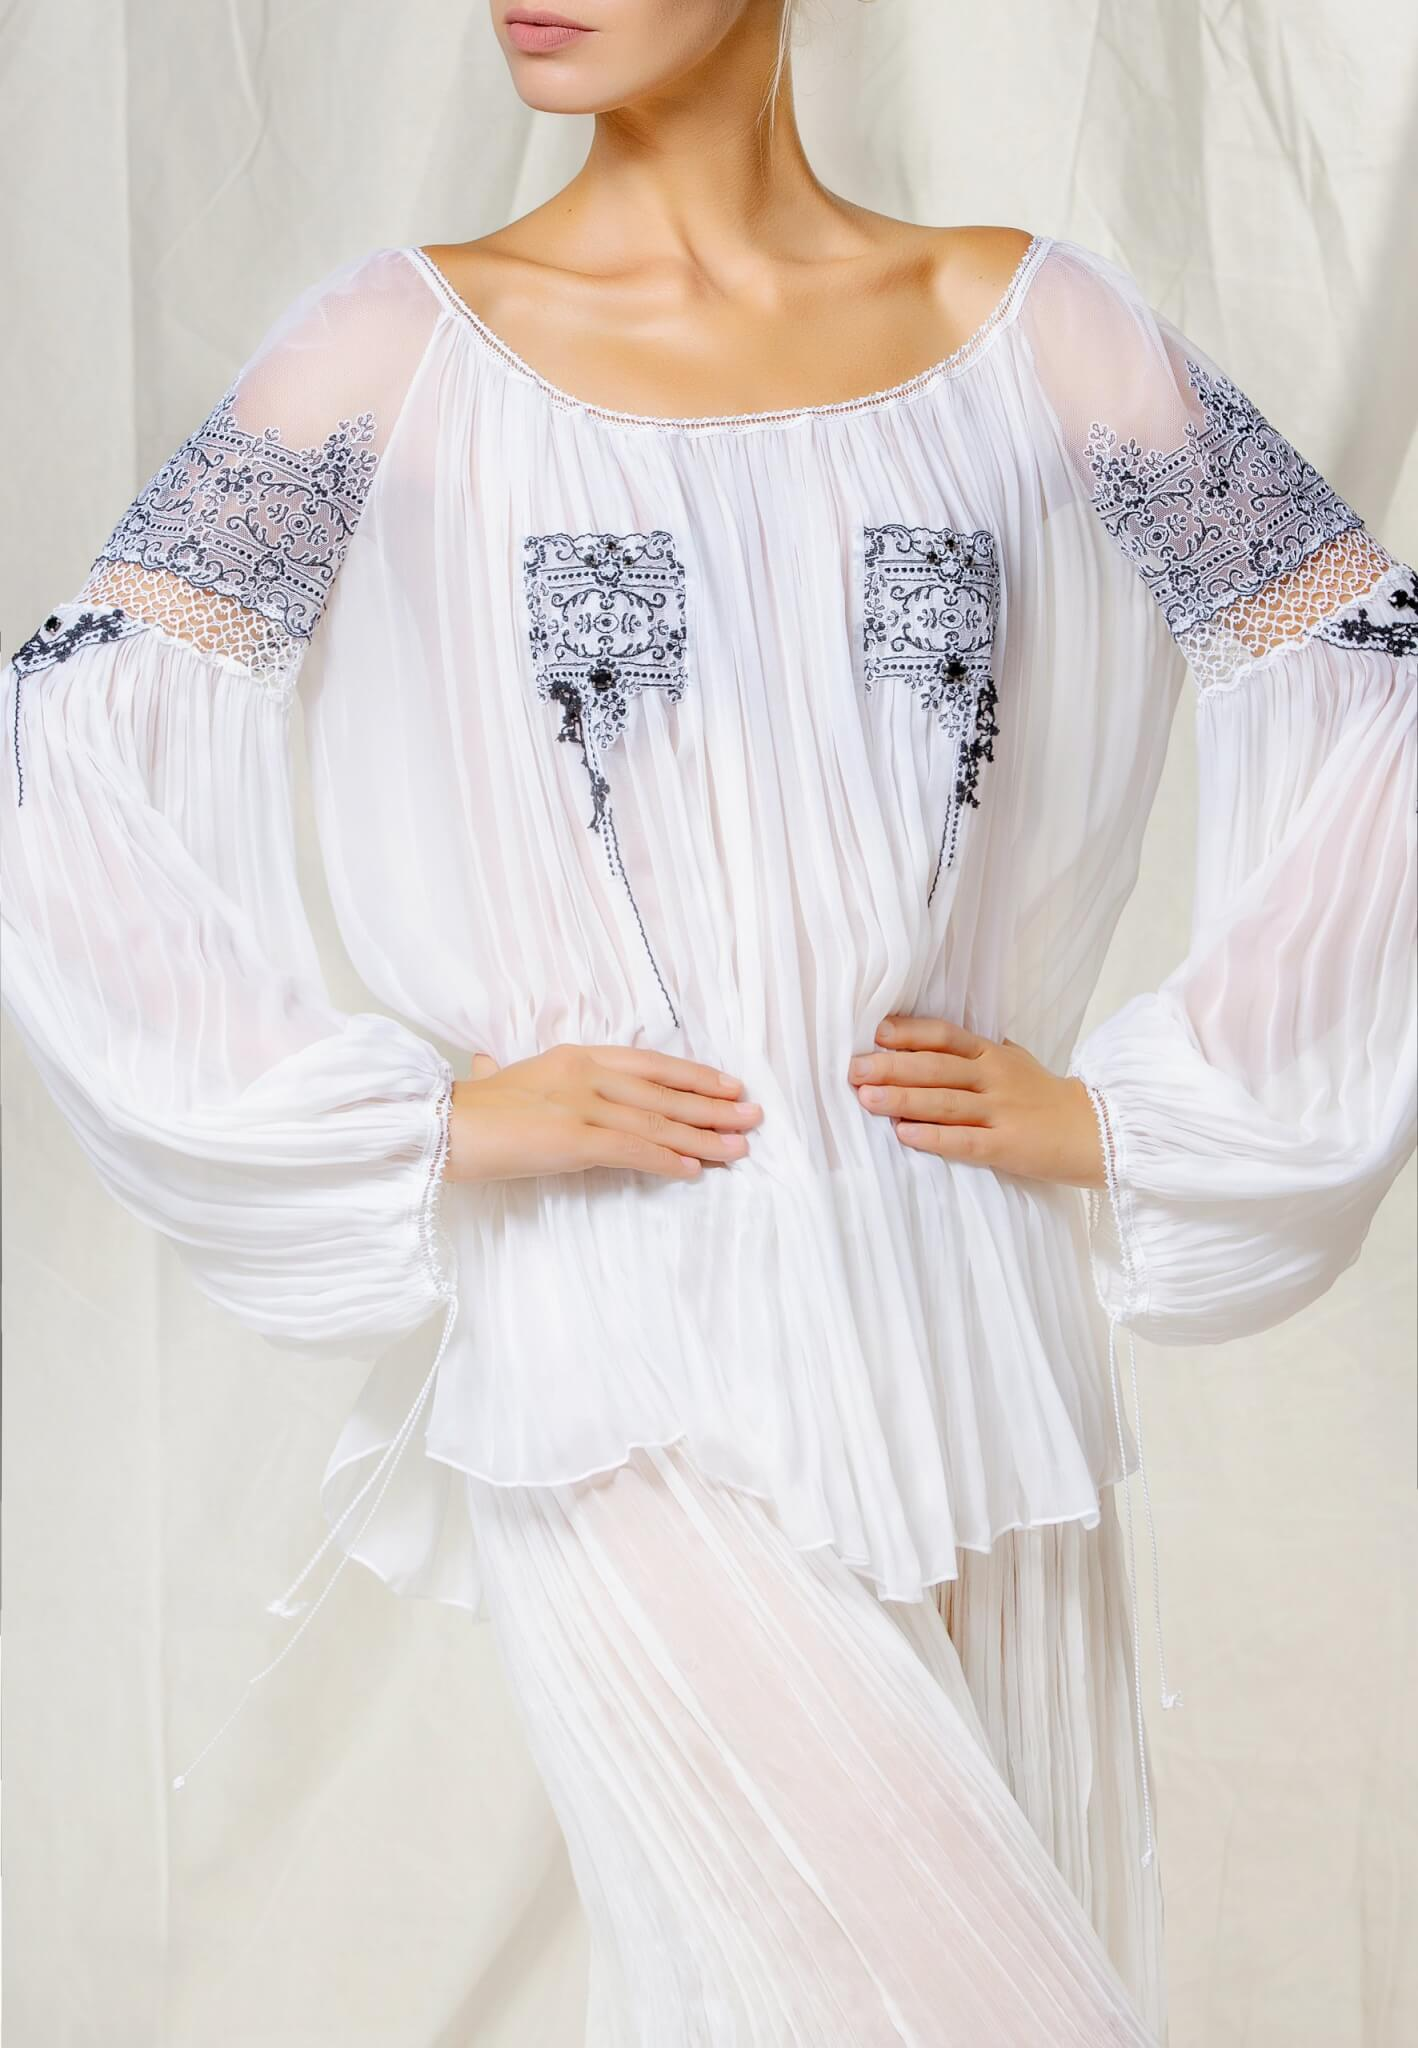 Silk blouse with lace and beads